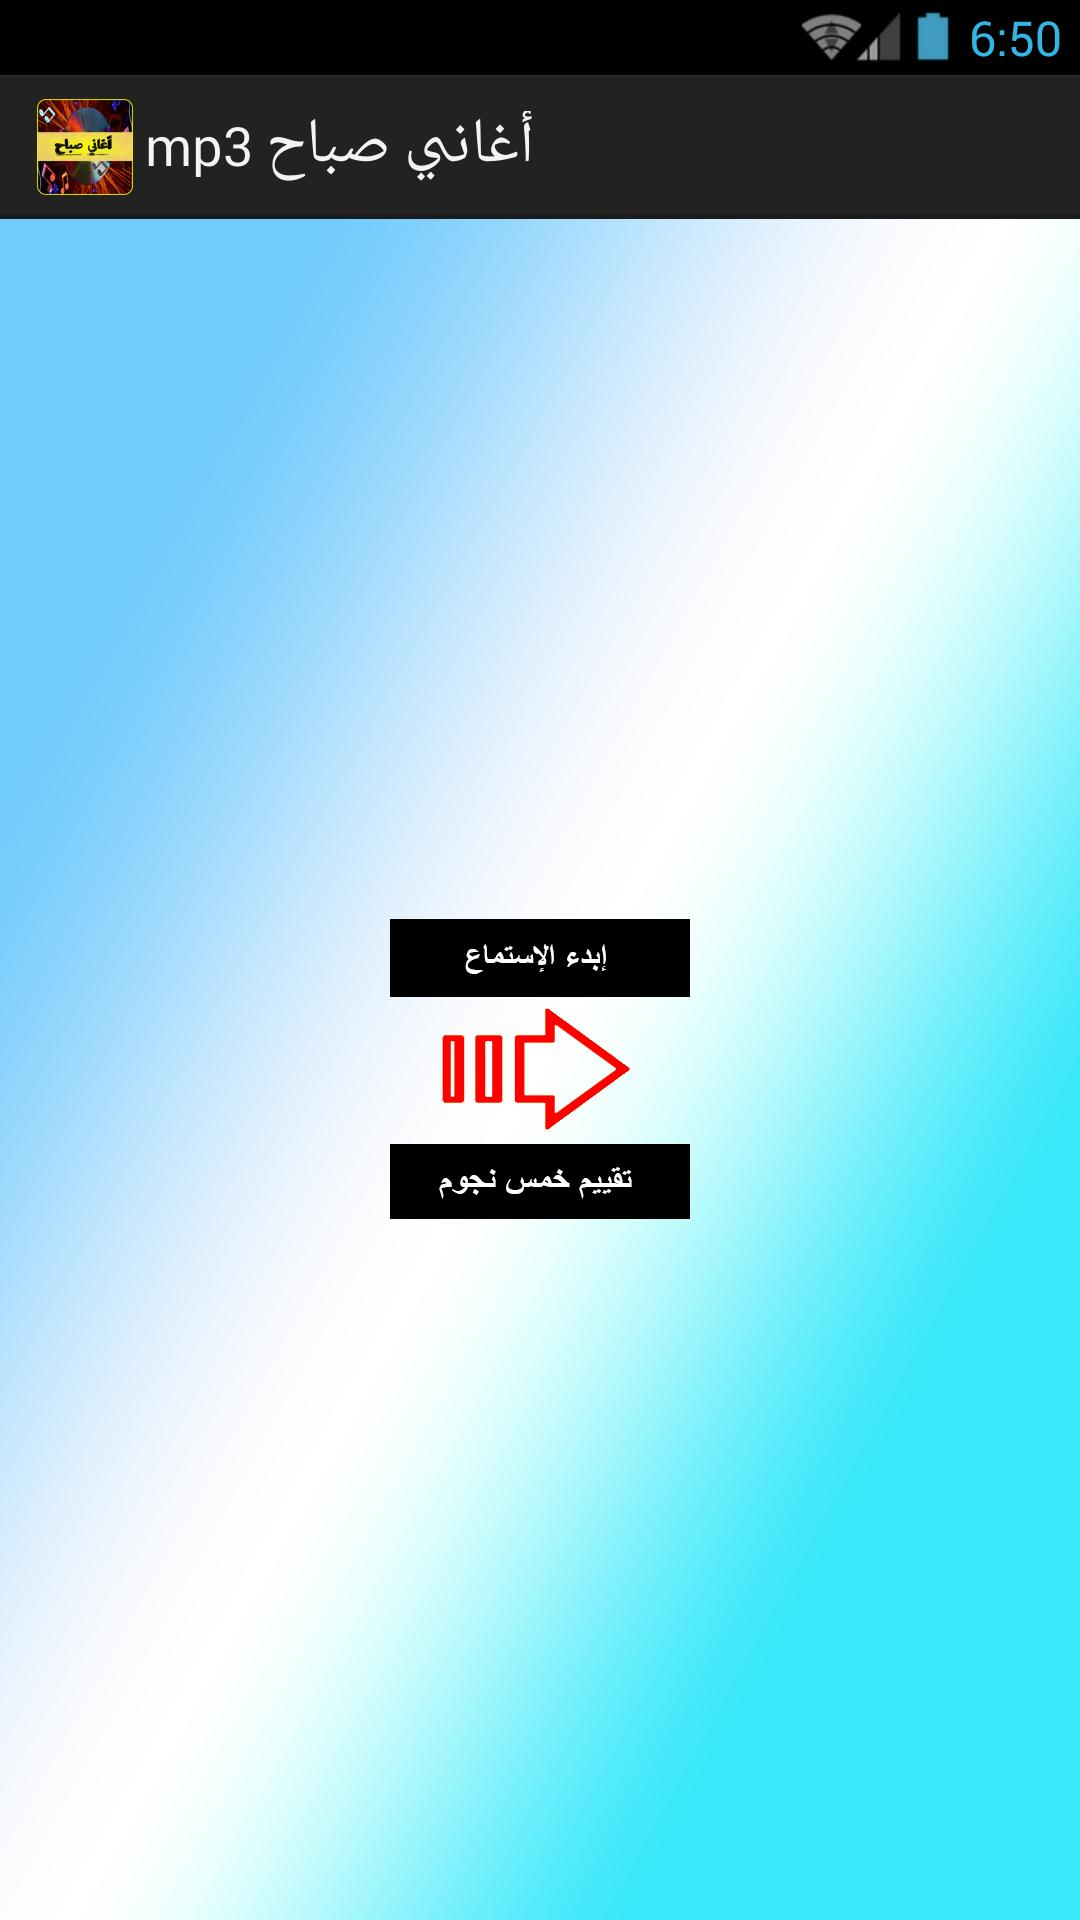 9cbce6617 أغاني صباح mp3 for Android - APK Download